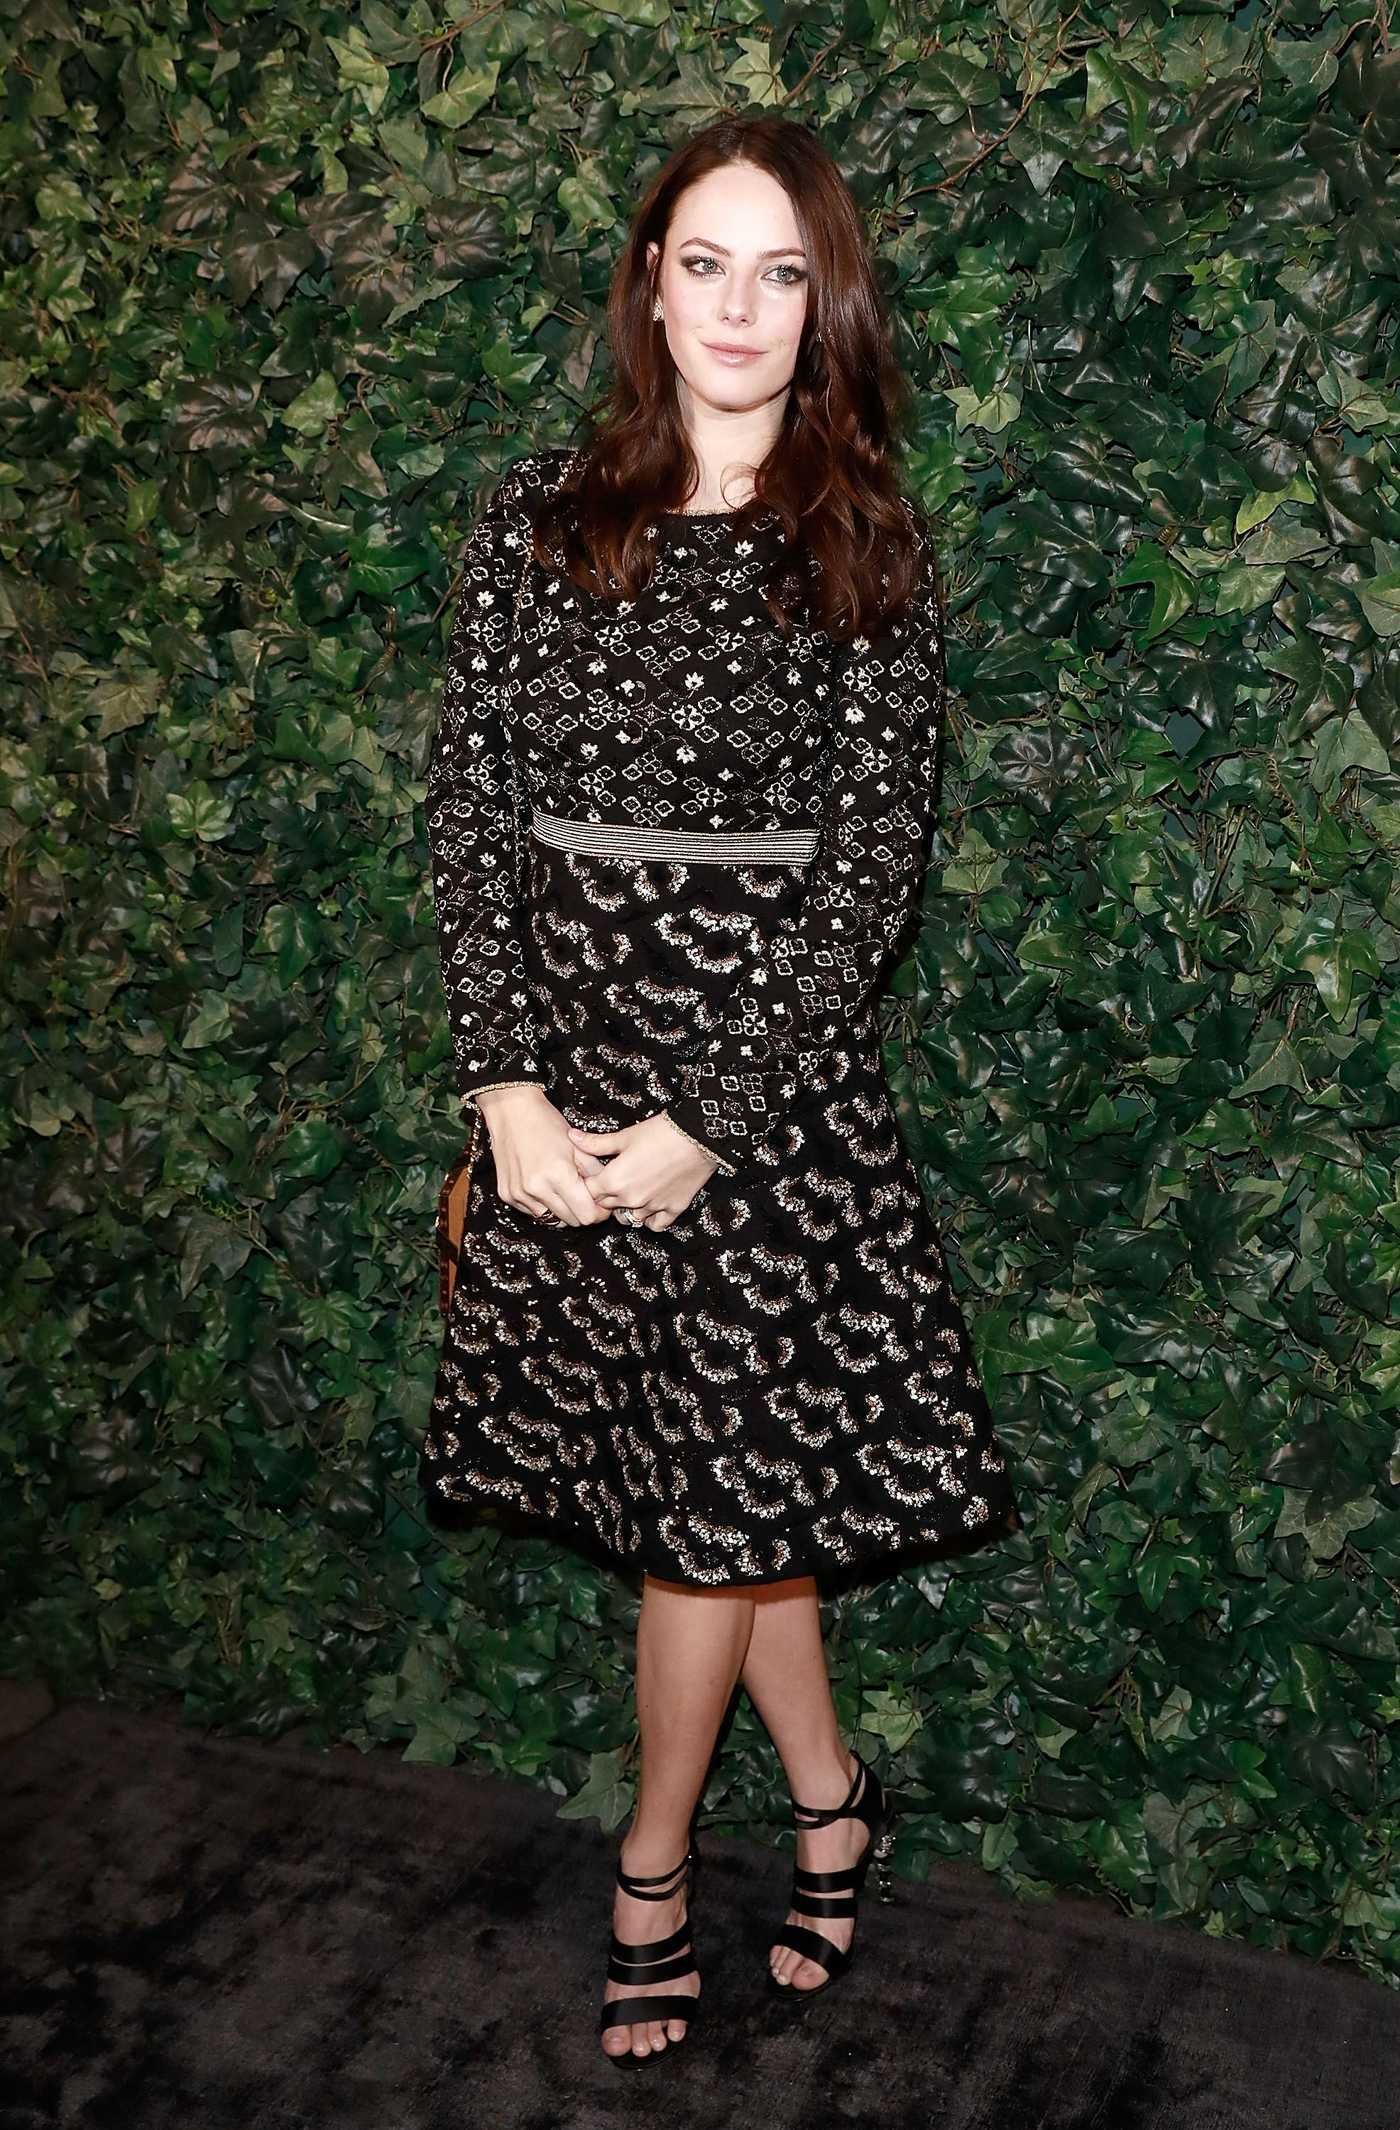 Kaya Scodelario at the Harvey Weinstein Pre BAFTA Dinner in London 02/10/2017